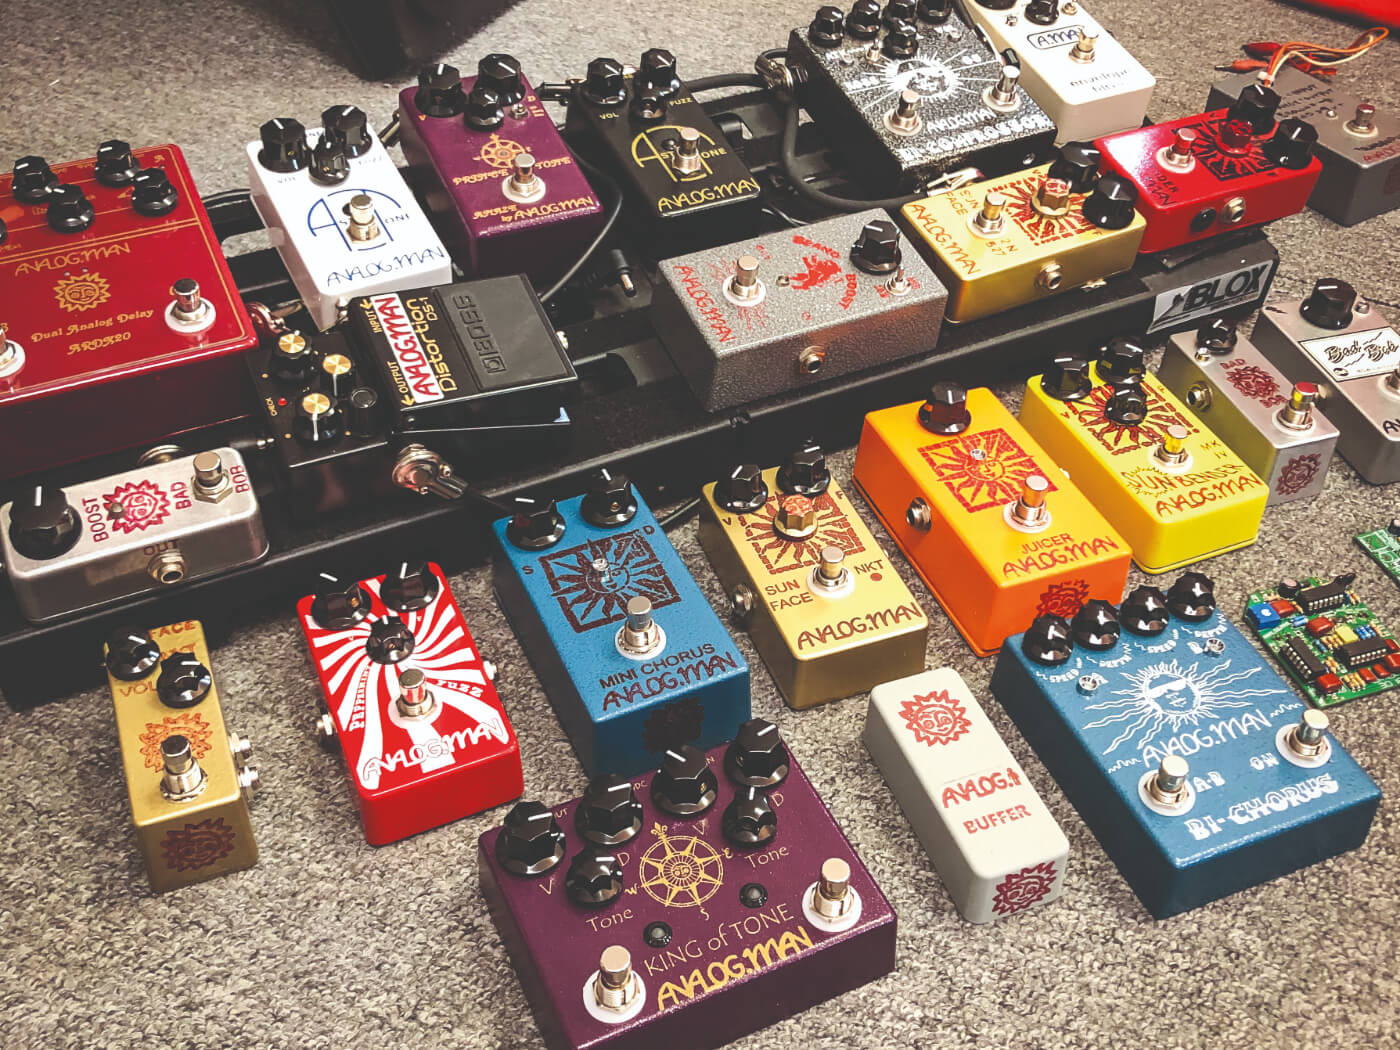 analog man pedals